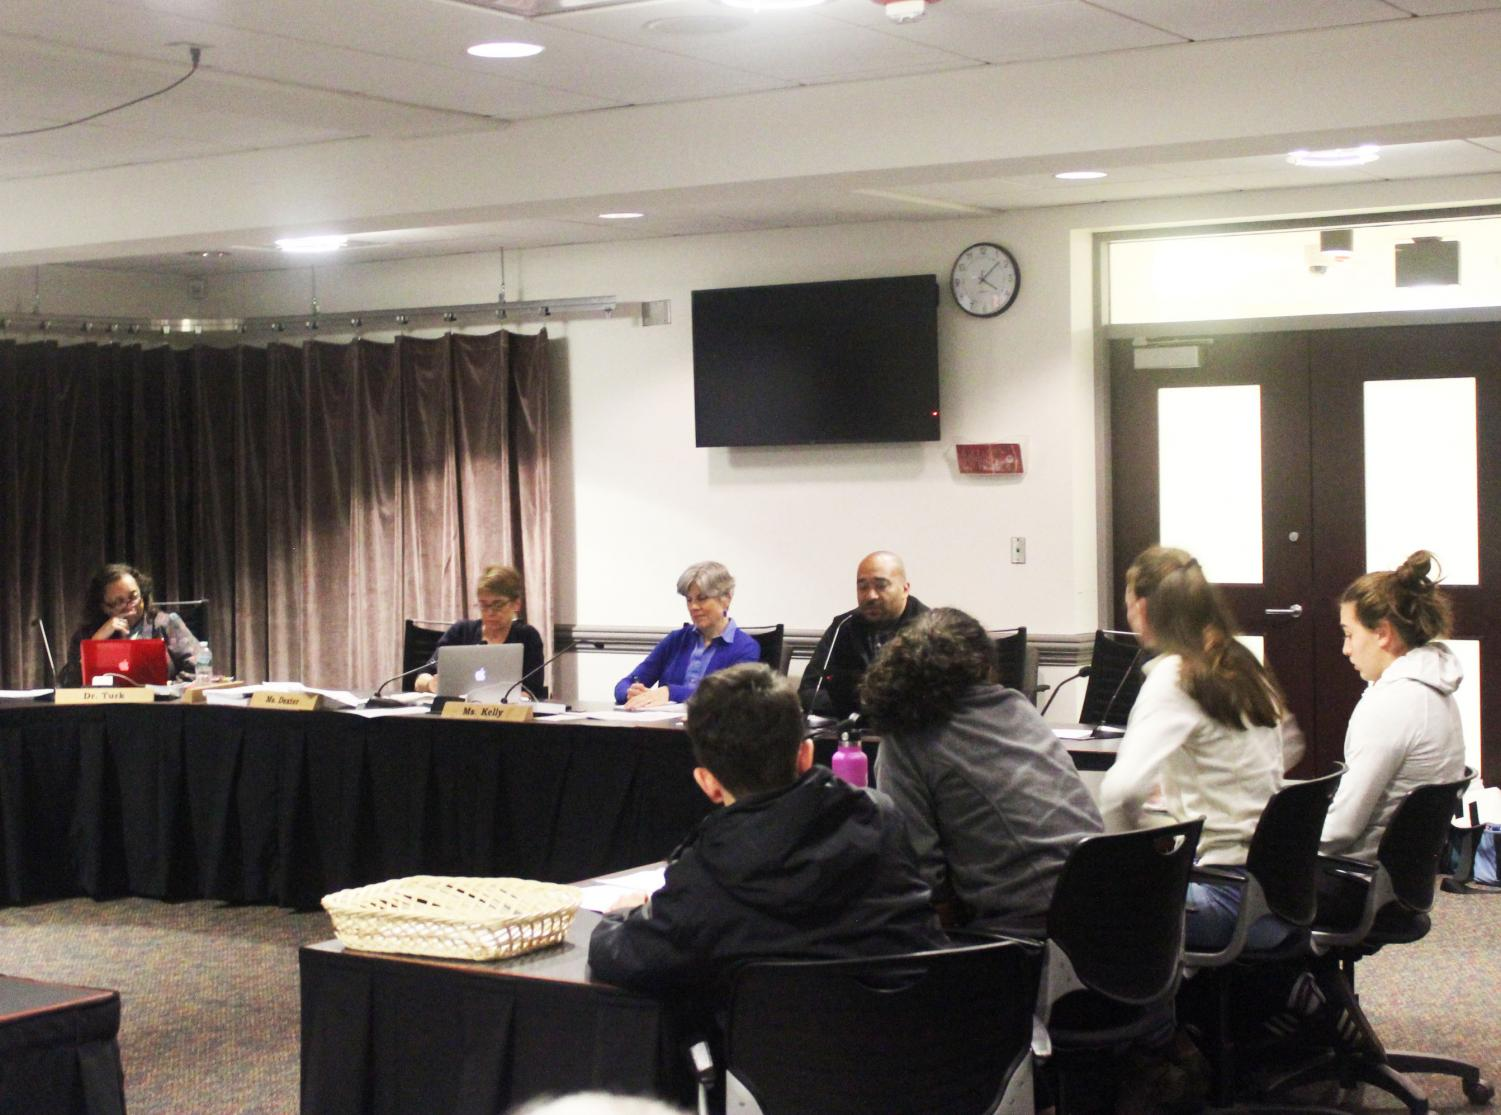 The School Committee discussed the AV policy on December 5th.